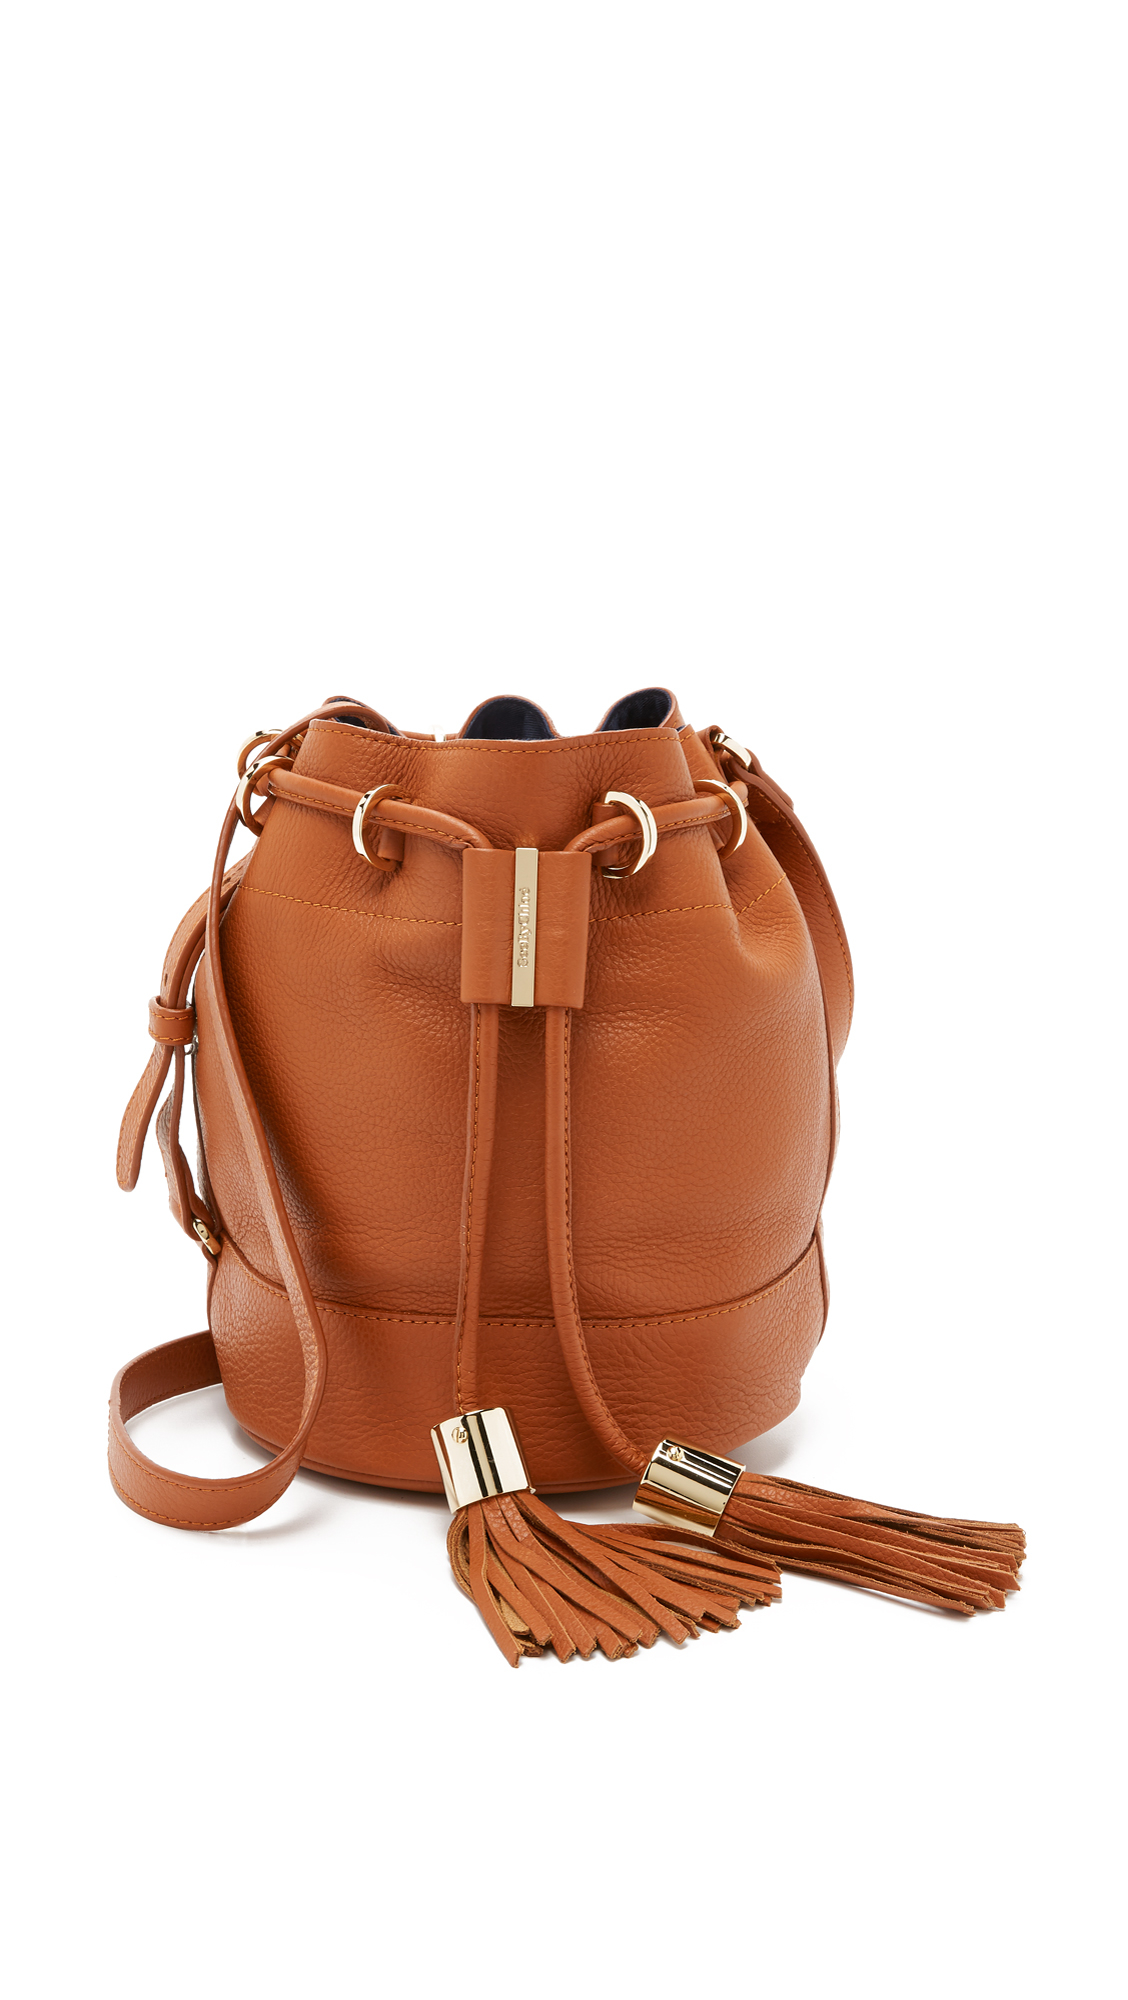 Gallery Previously Sold At Bop Women S See By Chloe Vicki Bucket Bag